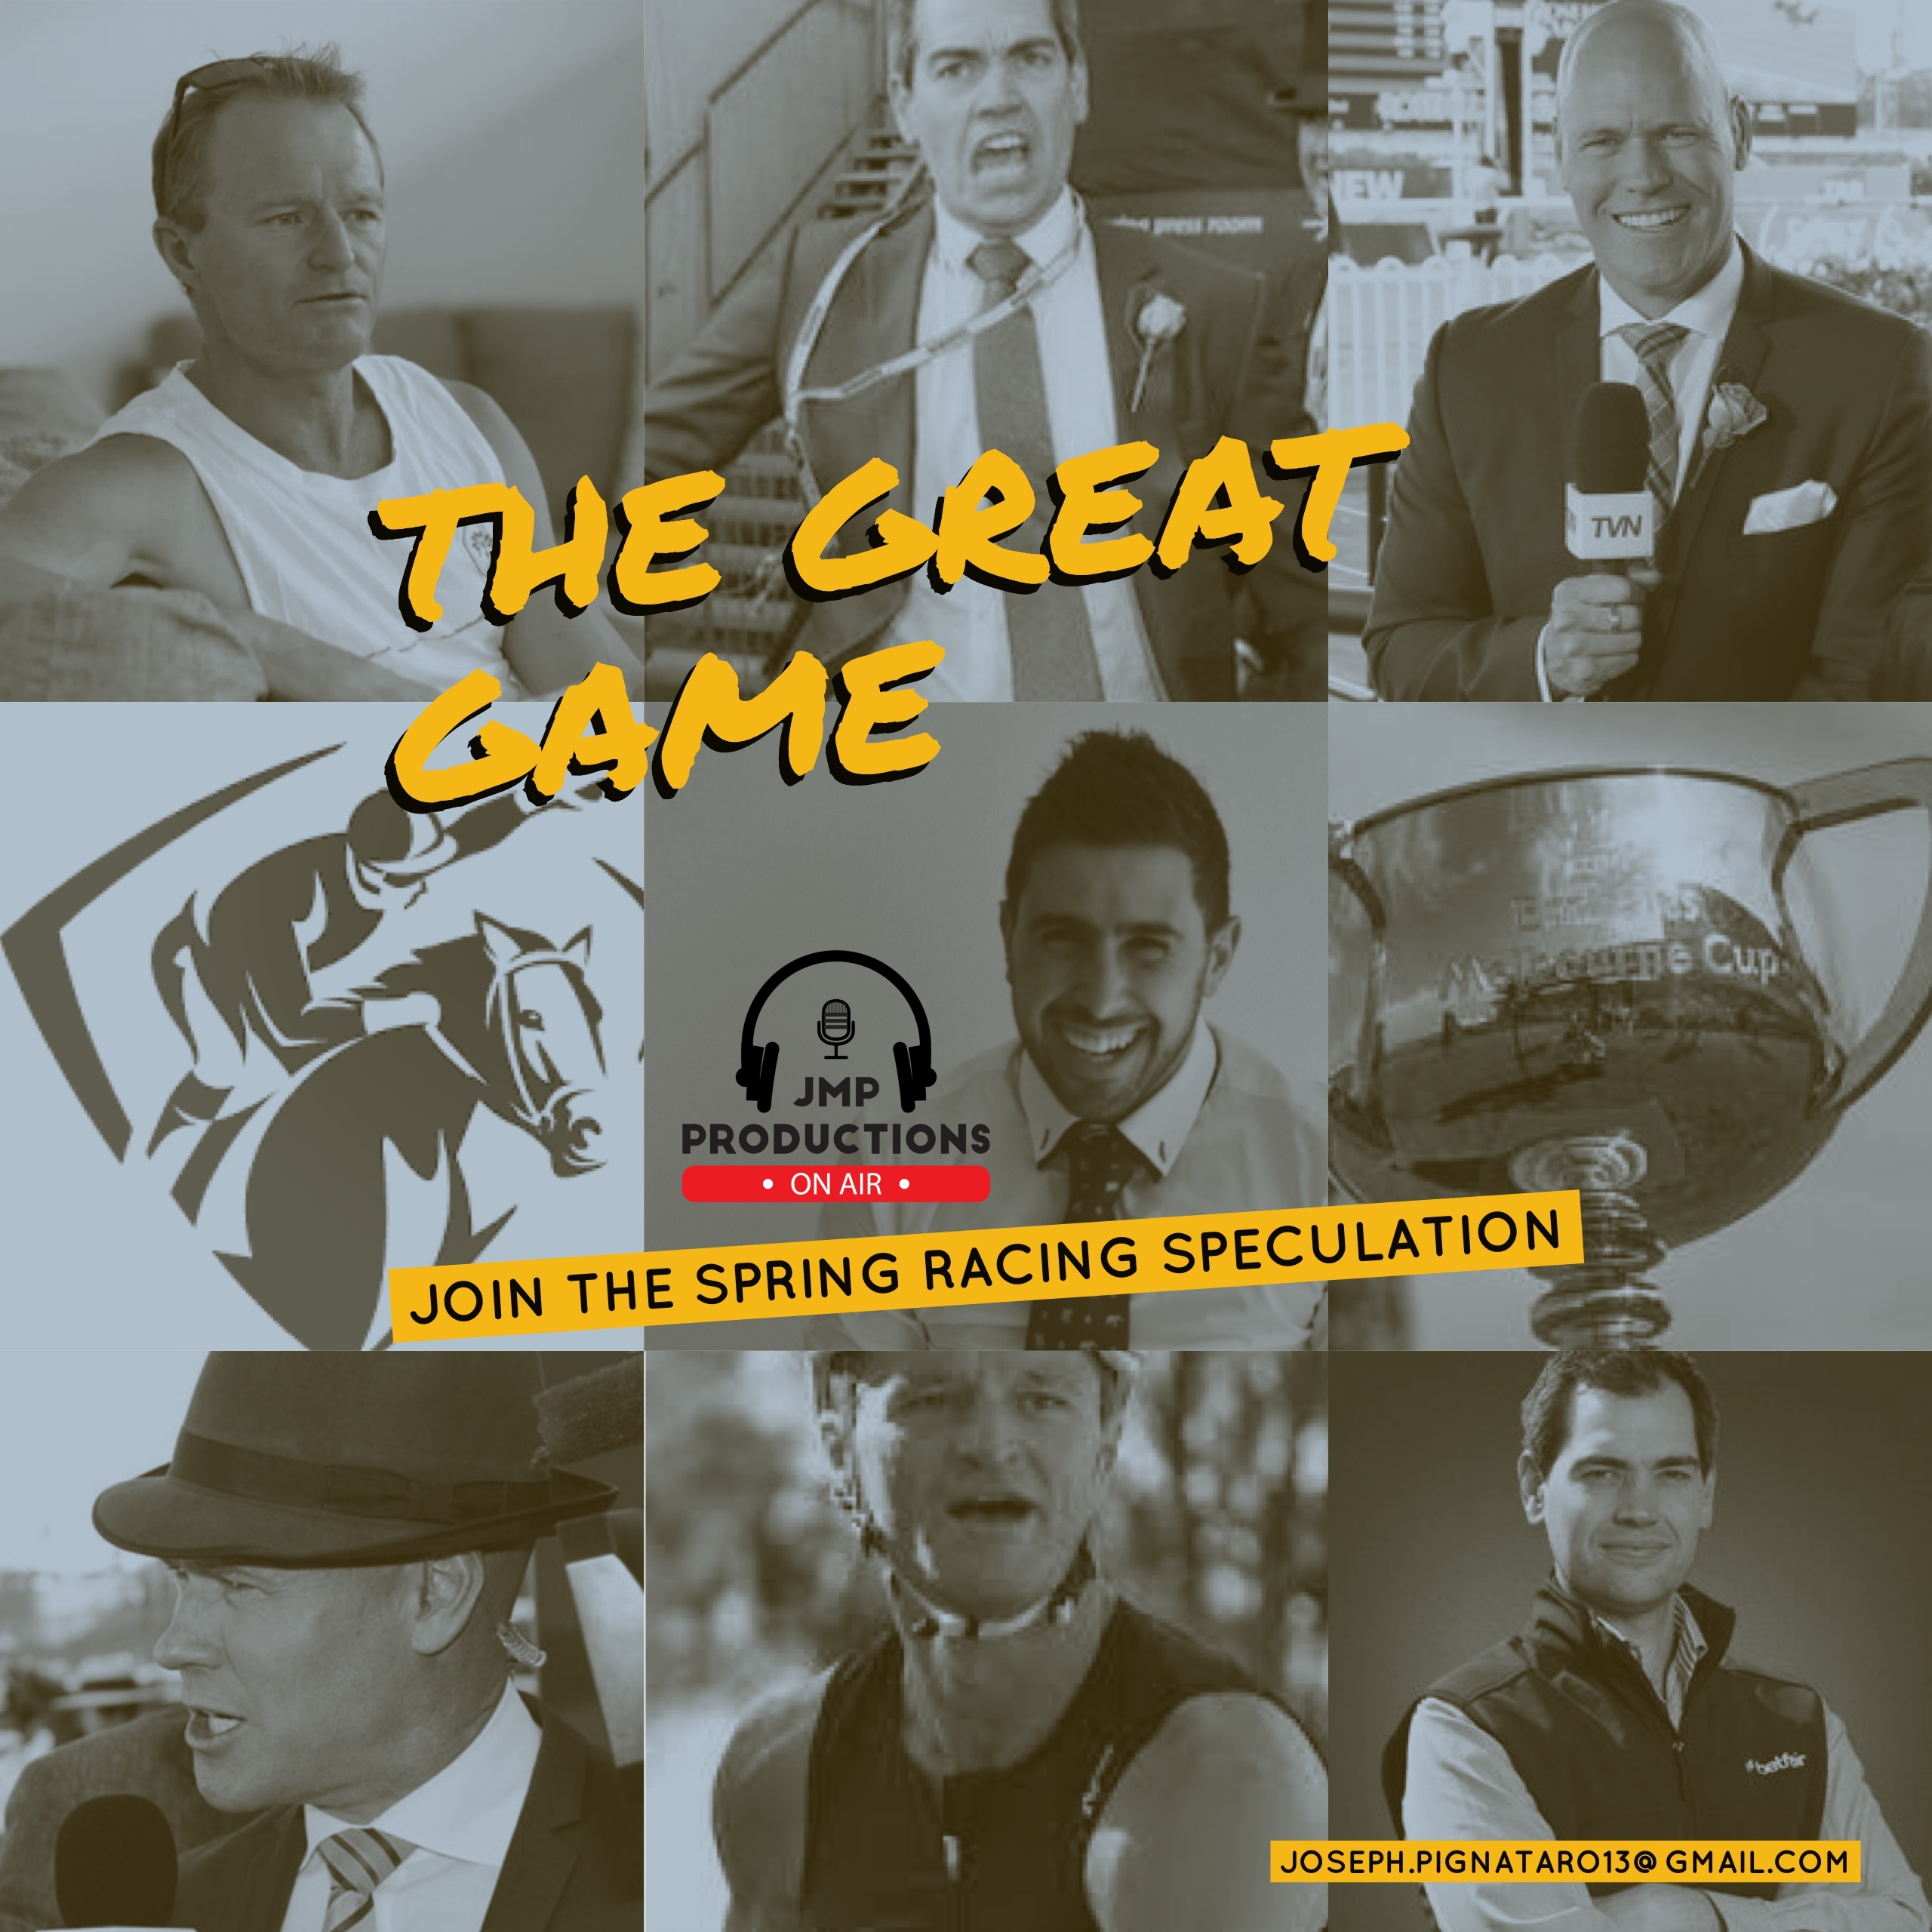 Episode 9 - The Great Game (October 25, 2018)